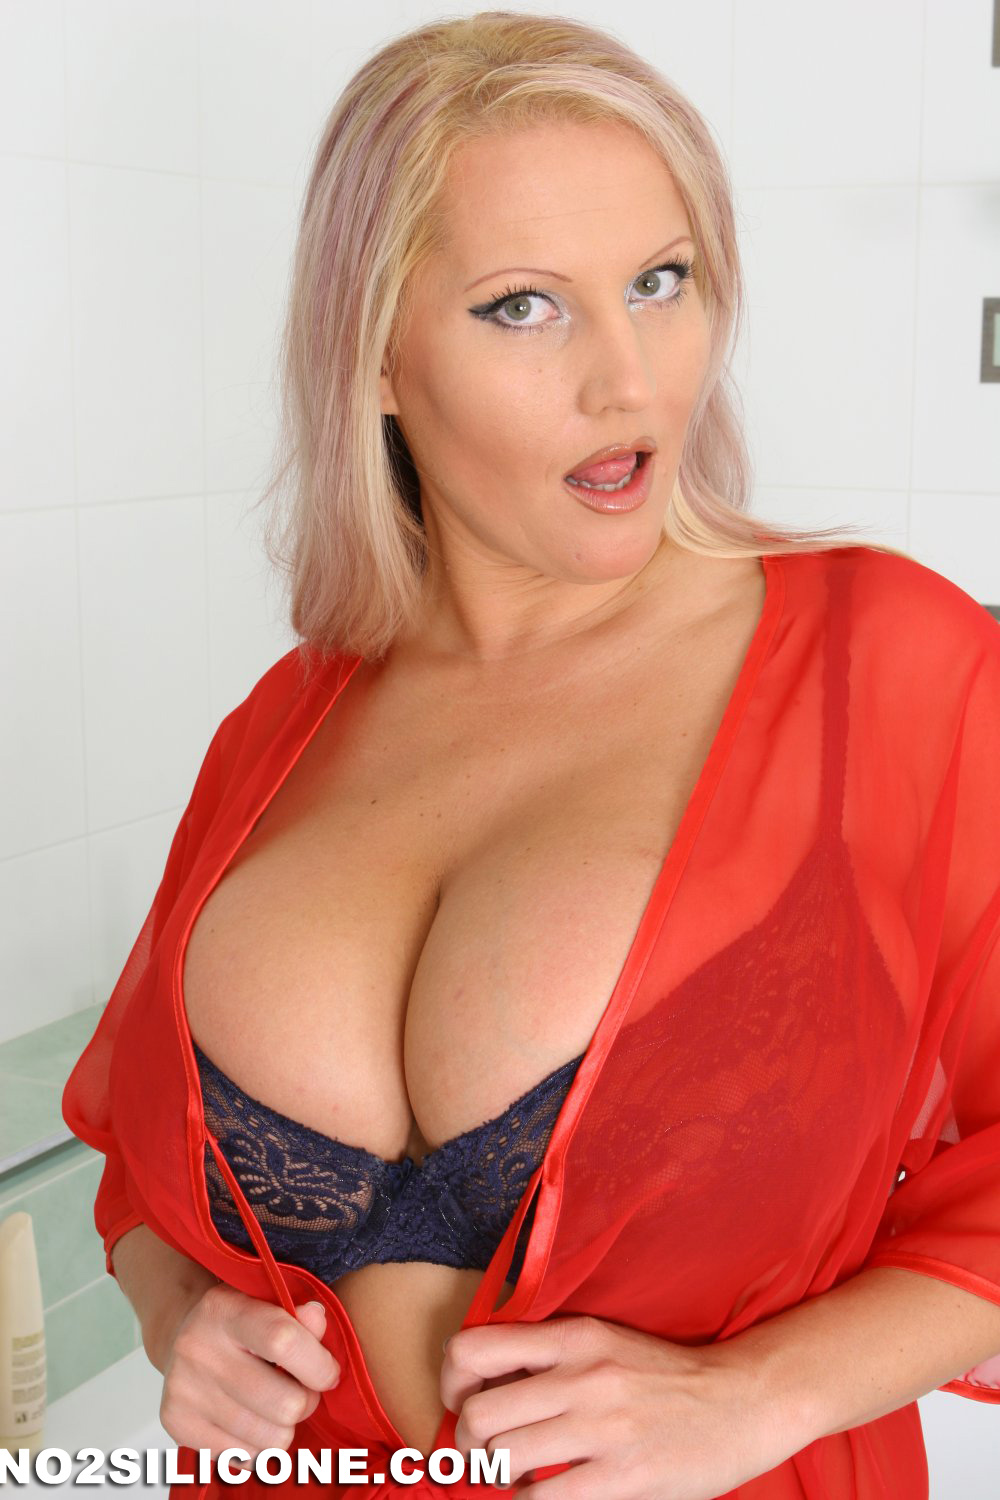 Hot busty blonde oils up amp toys